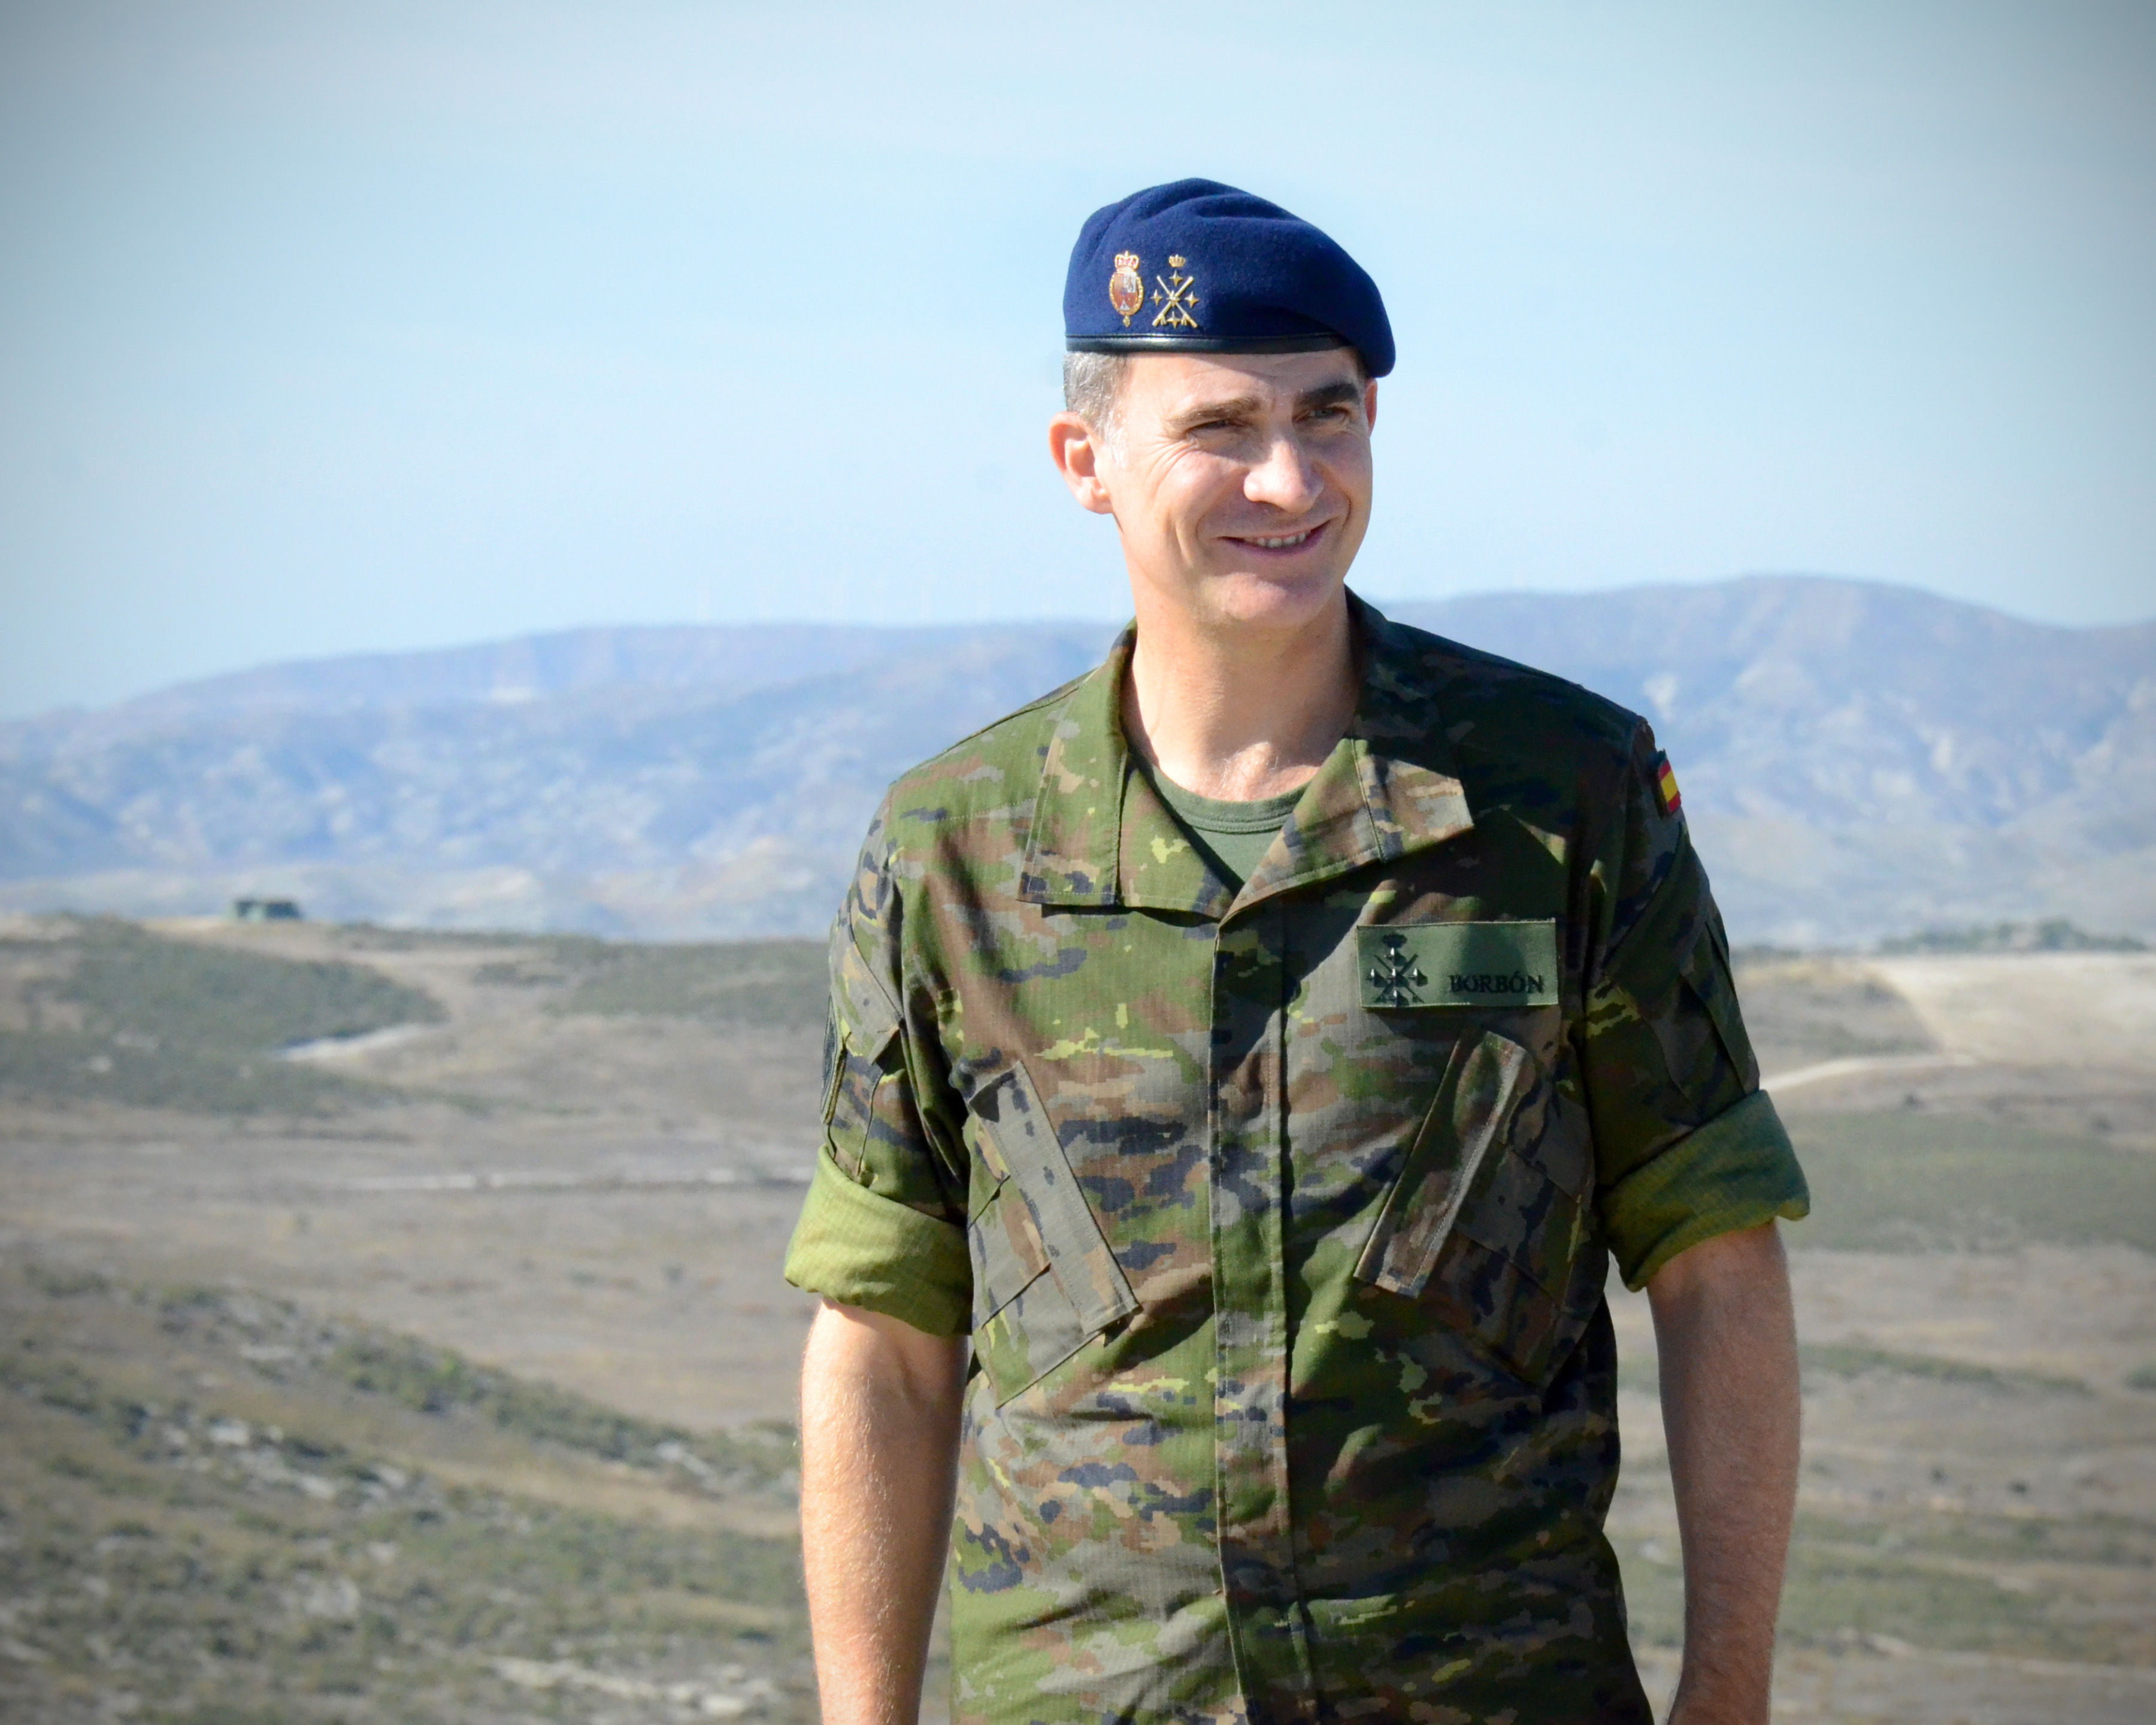 A portrait of His Majesty the King Felipe VI on 30 october during Trident Juncture 2015